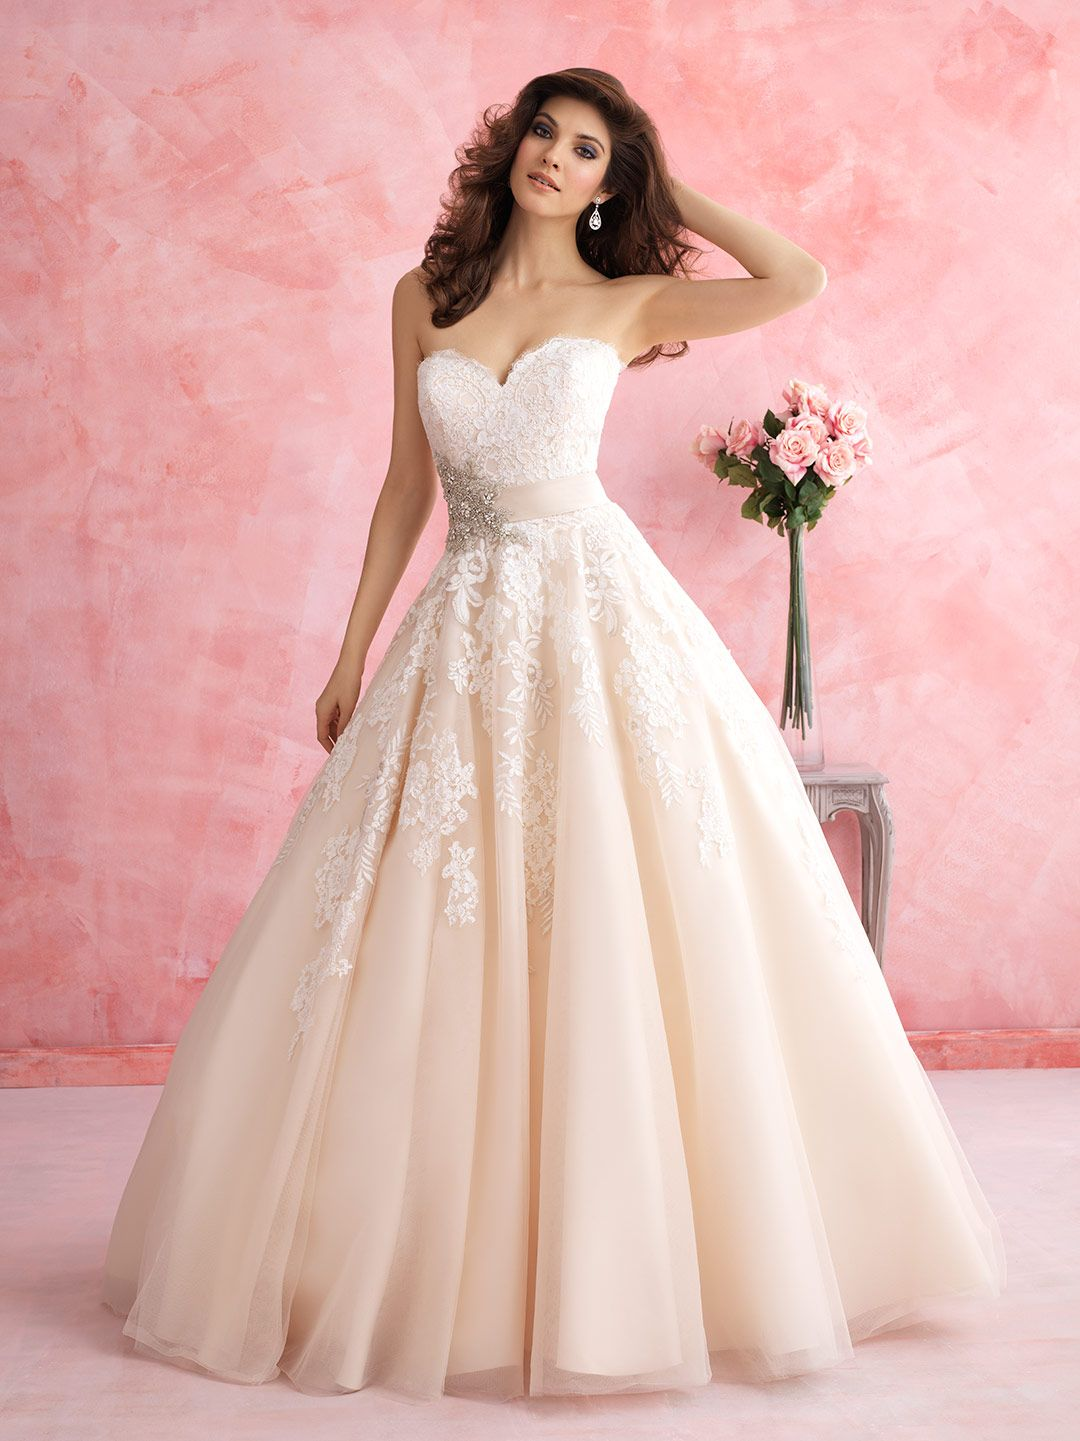 Pin de Karin K en wedding dresses | Pinterest | De novia, Vestidos ...